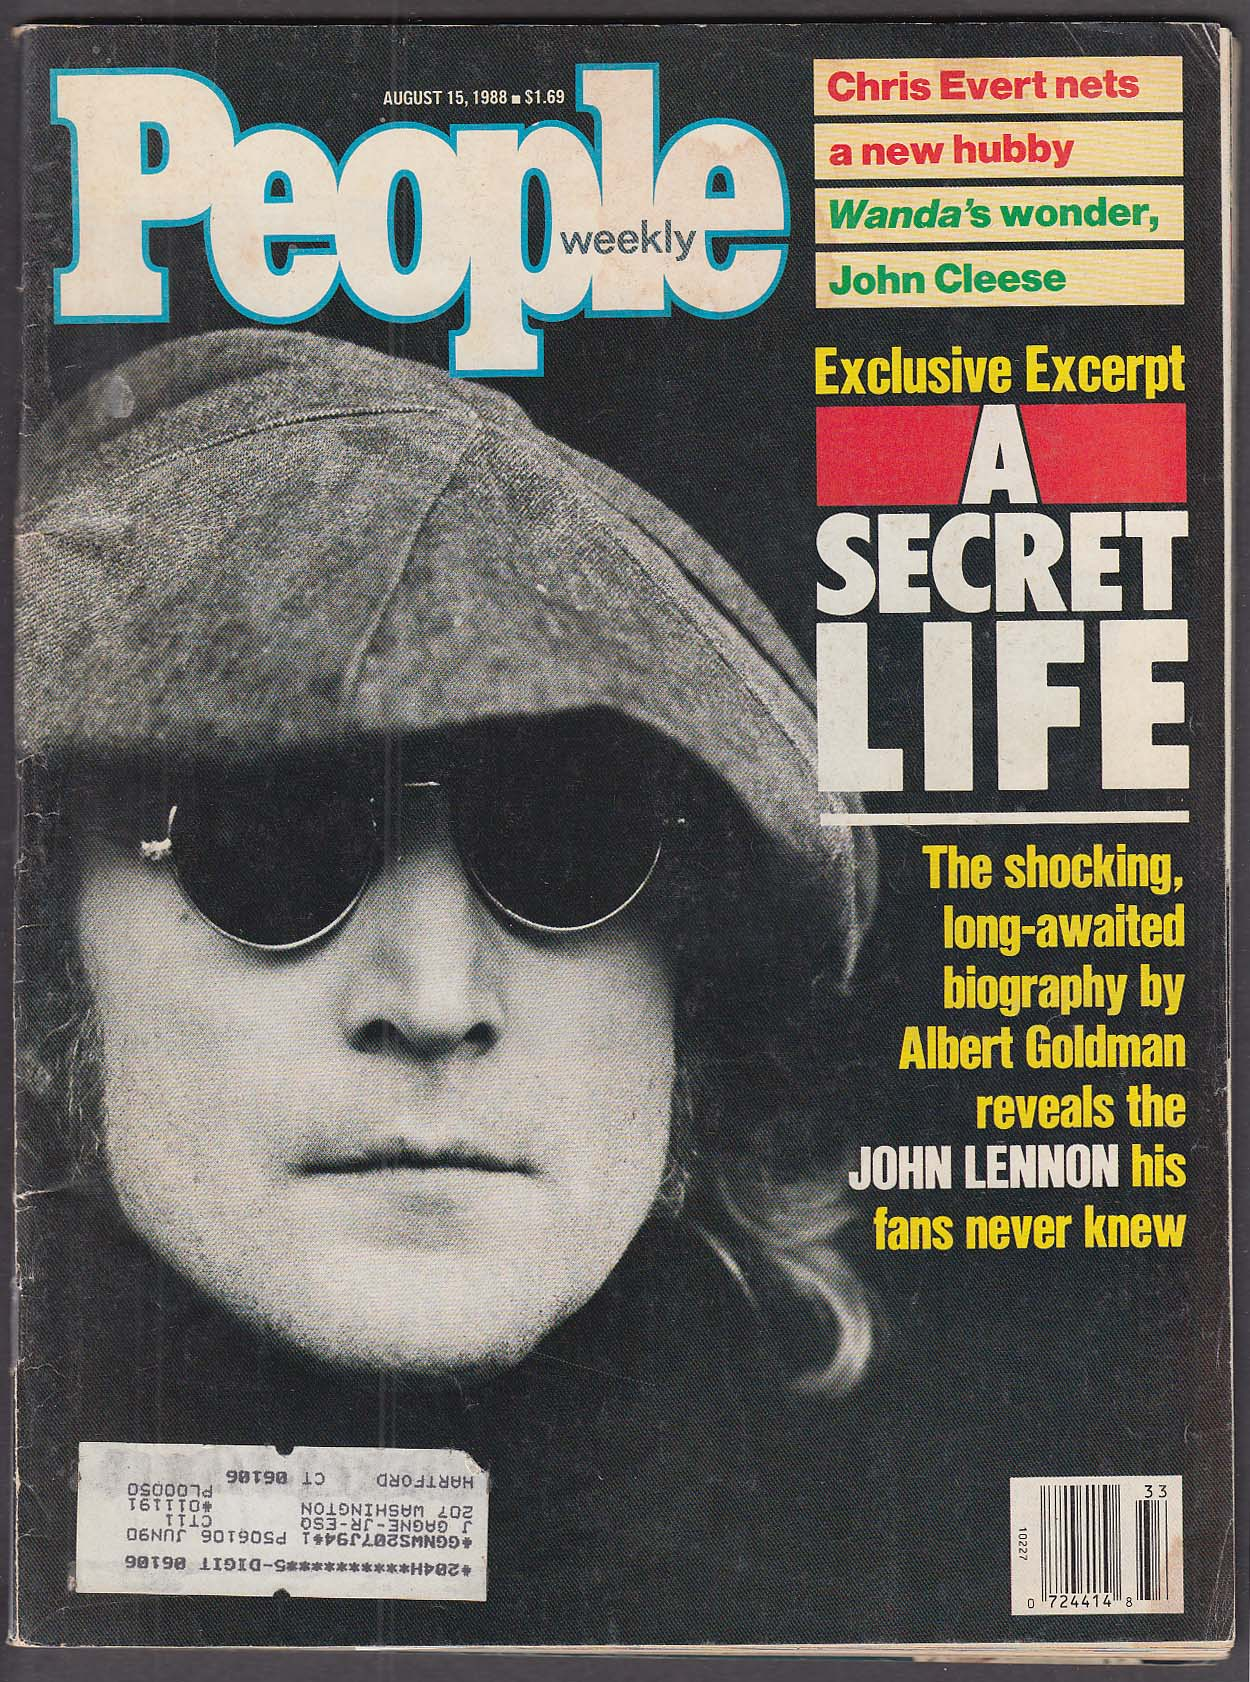 Image for PEOPLE John Lennon John Cleese Chris Evert 8/15 1988